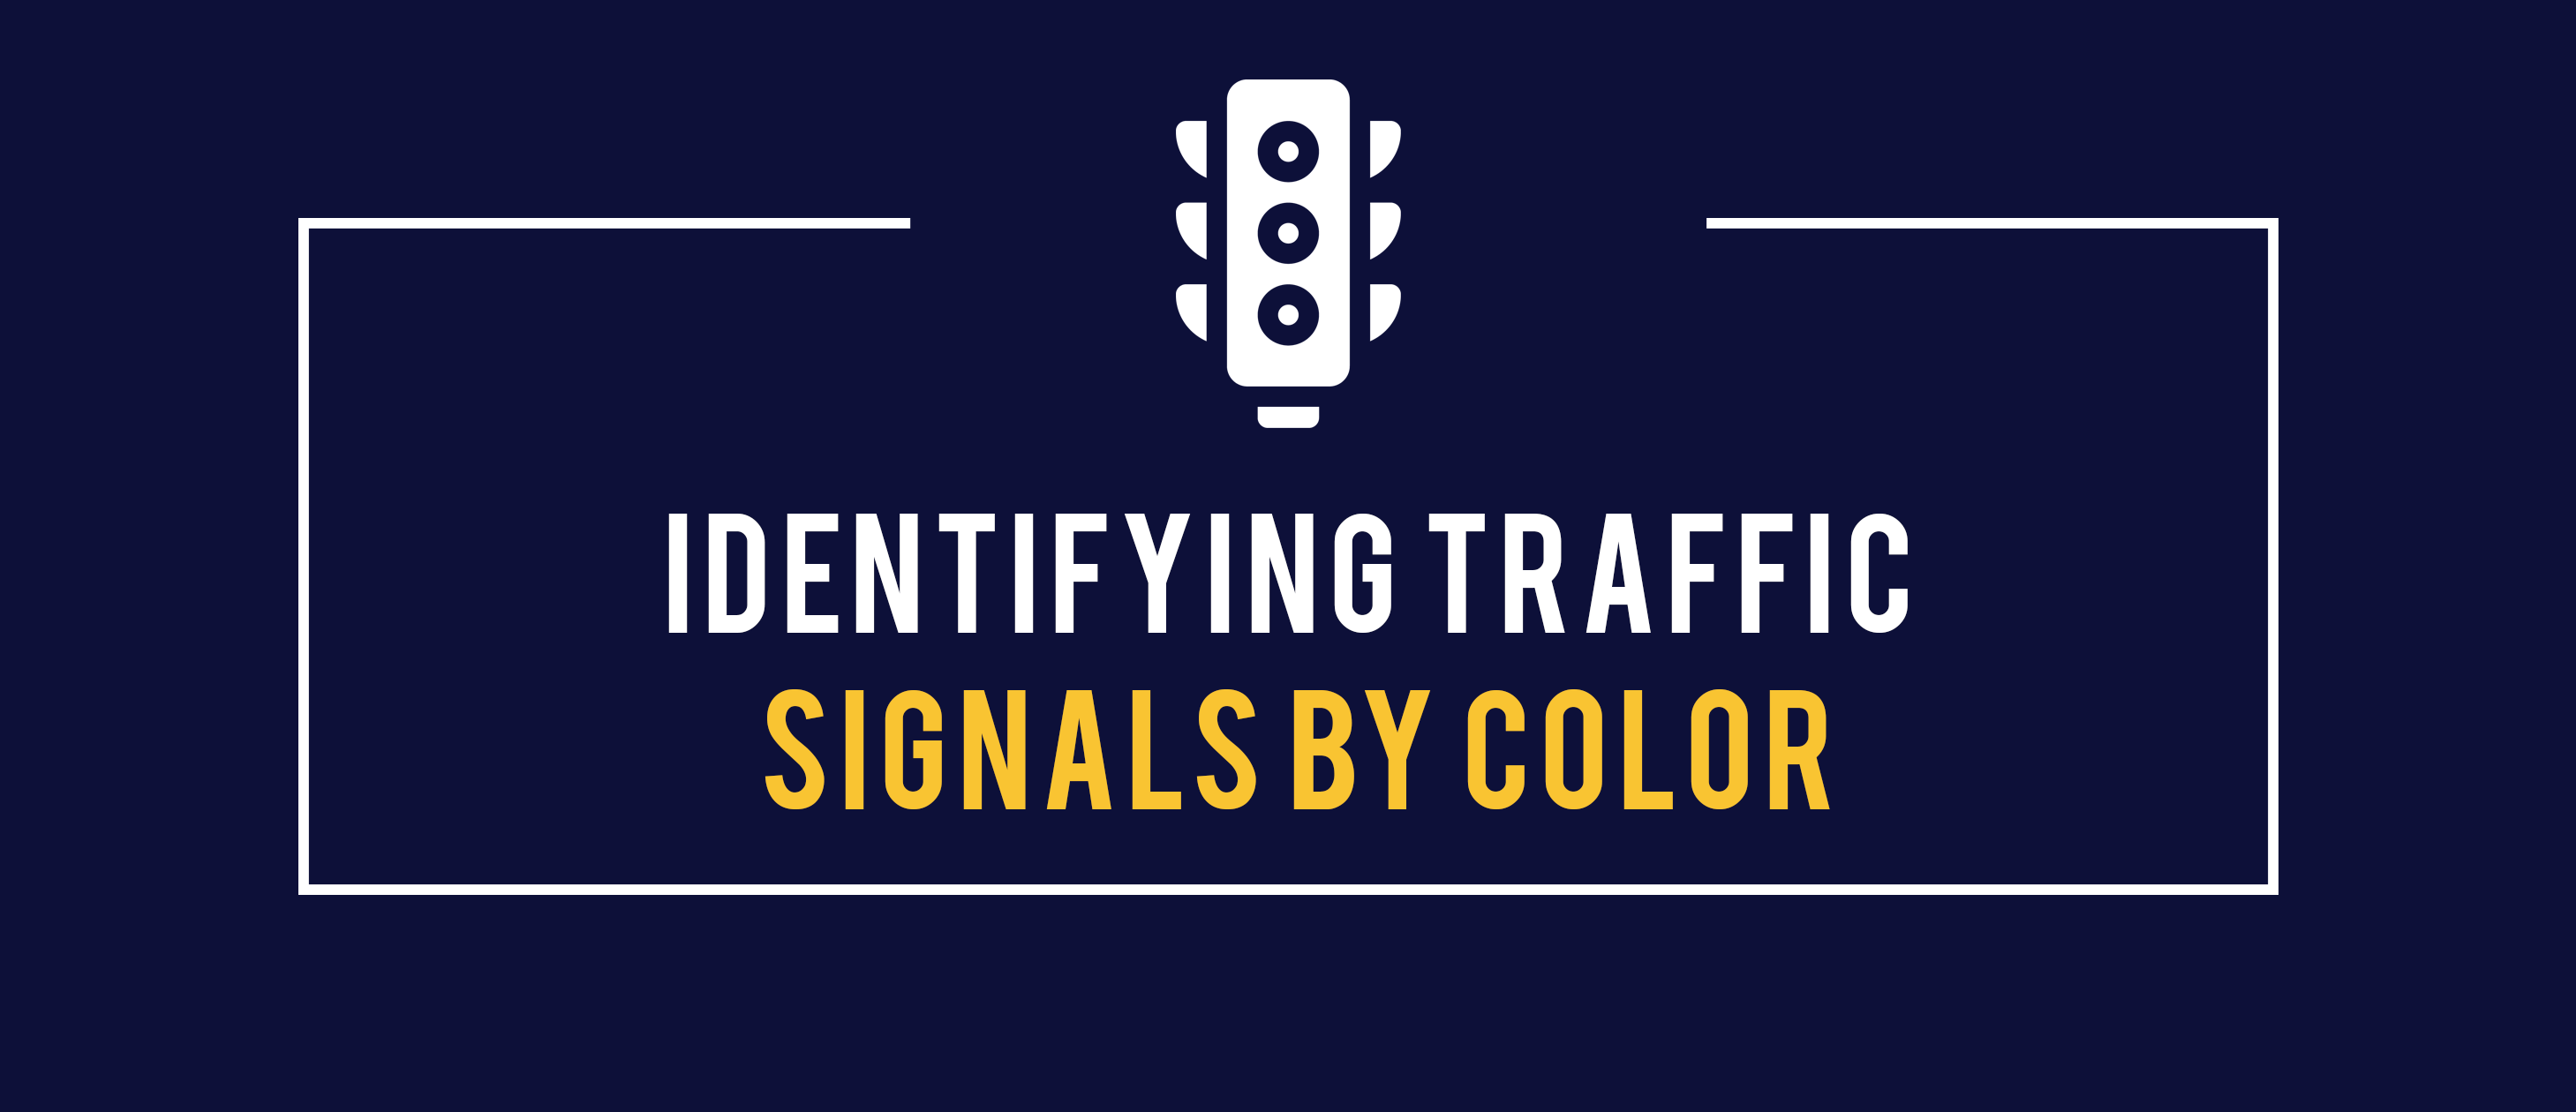 identifying traffic signals by color